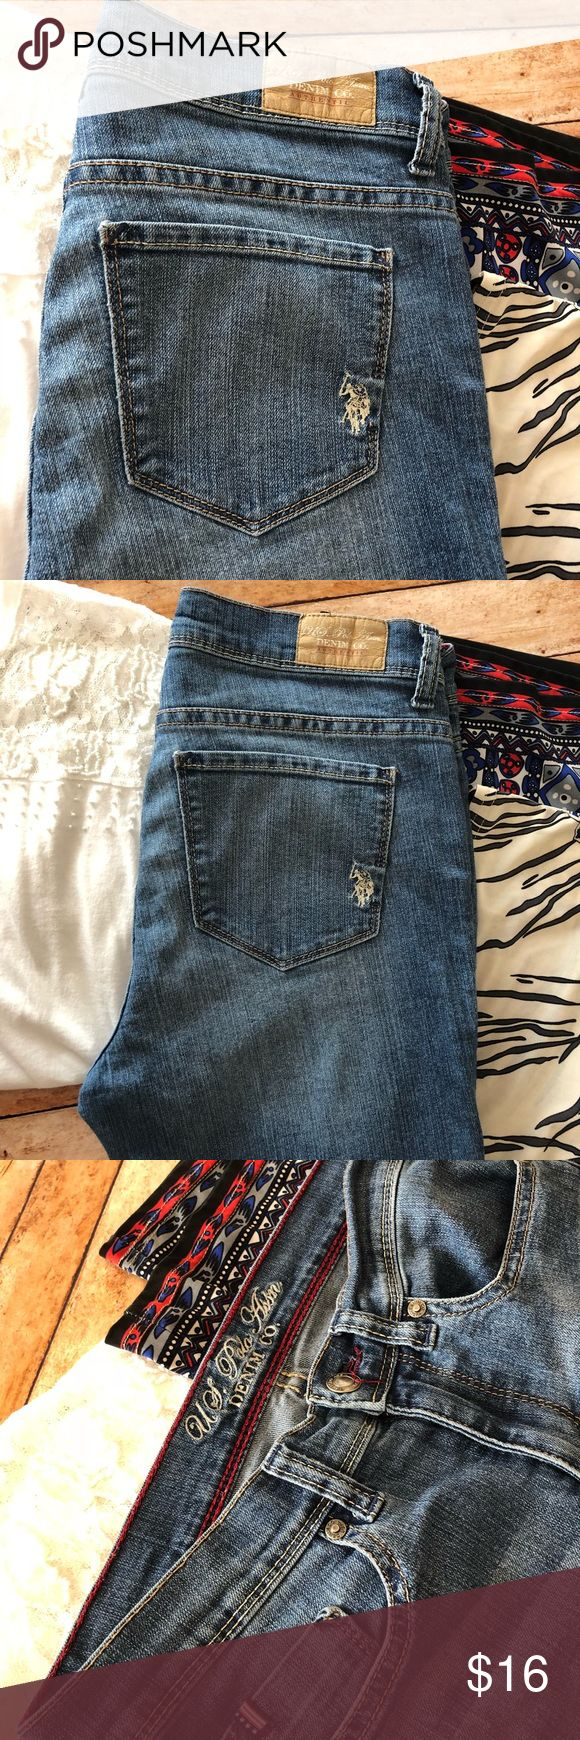 Just In ⭐️  Polo Jeans Polo Jeans  • Size 8 • pre-loved  ⭐️Bundle and Save  ⭐️ Reasonable Offers Welcomed U.S. Polo Assn. Jeans Straight Leg